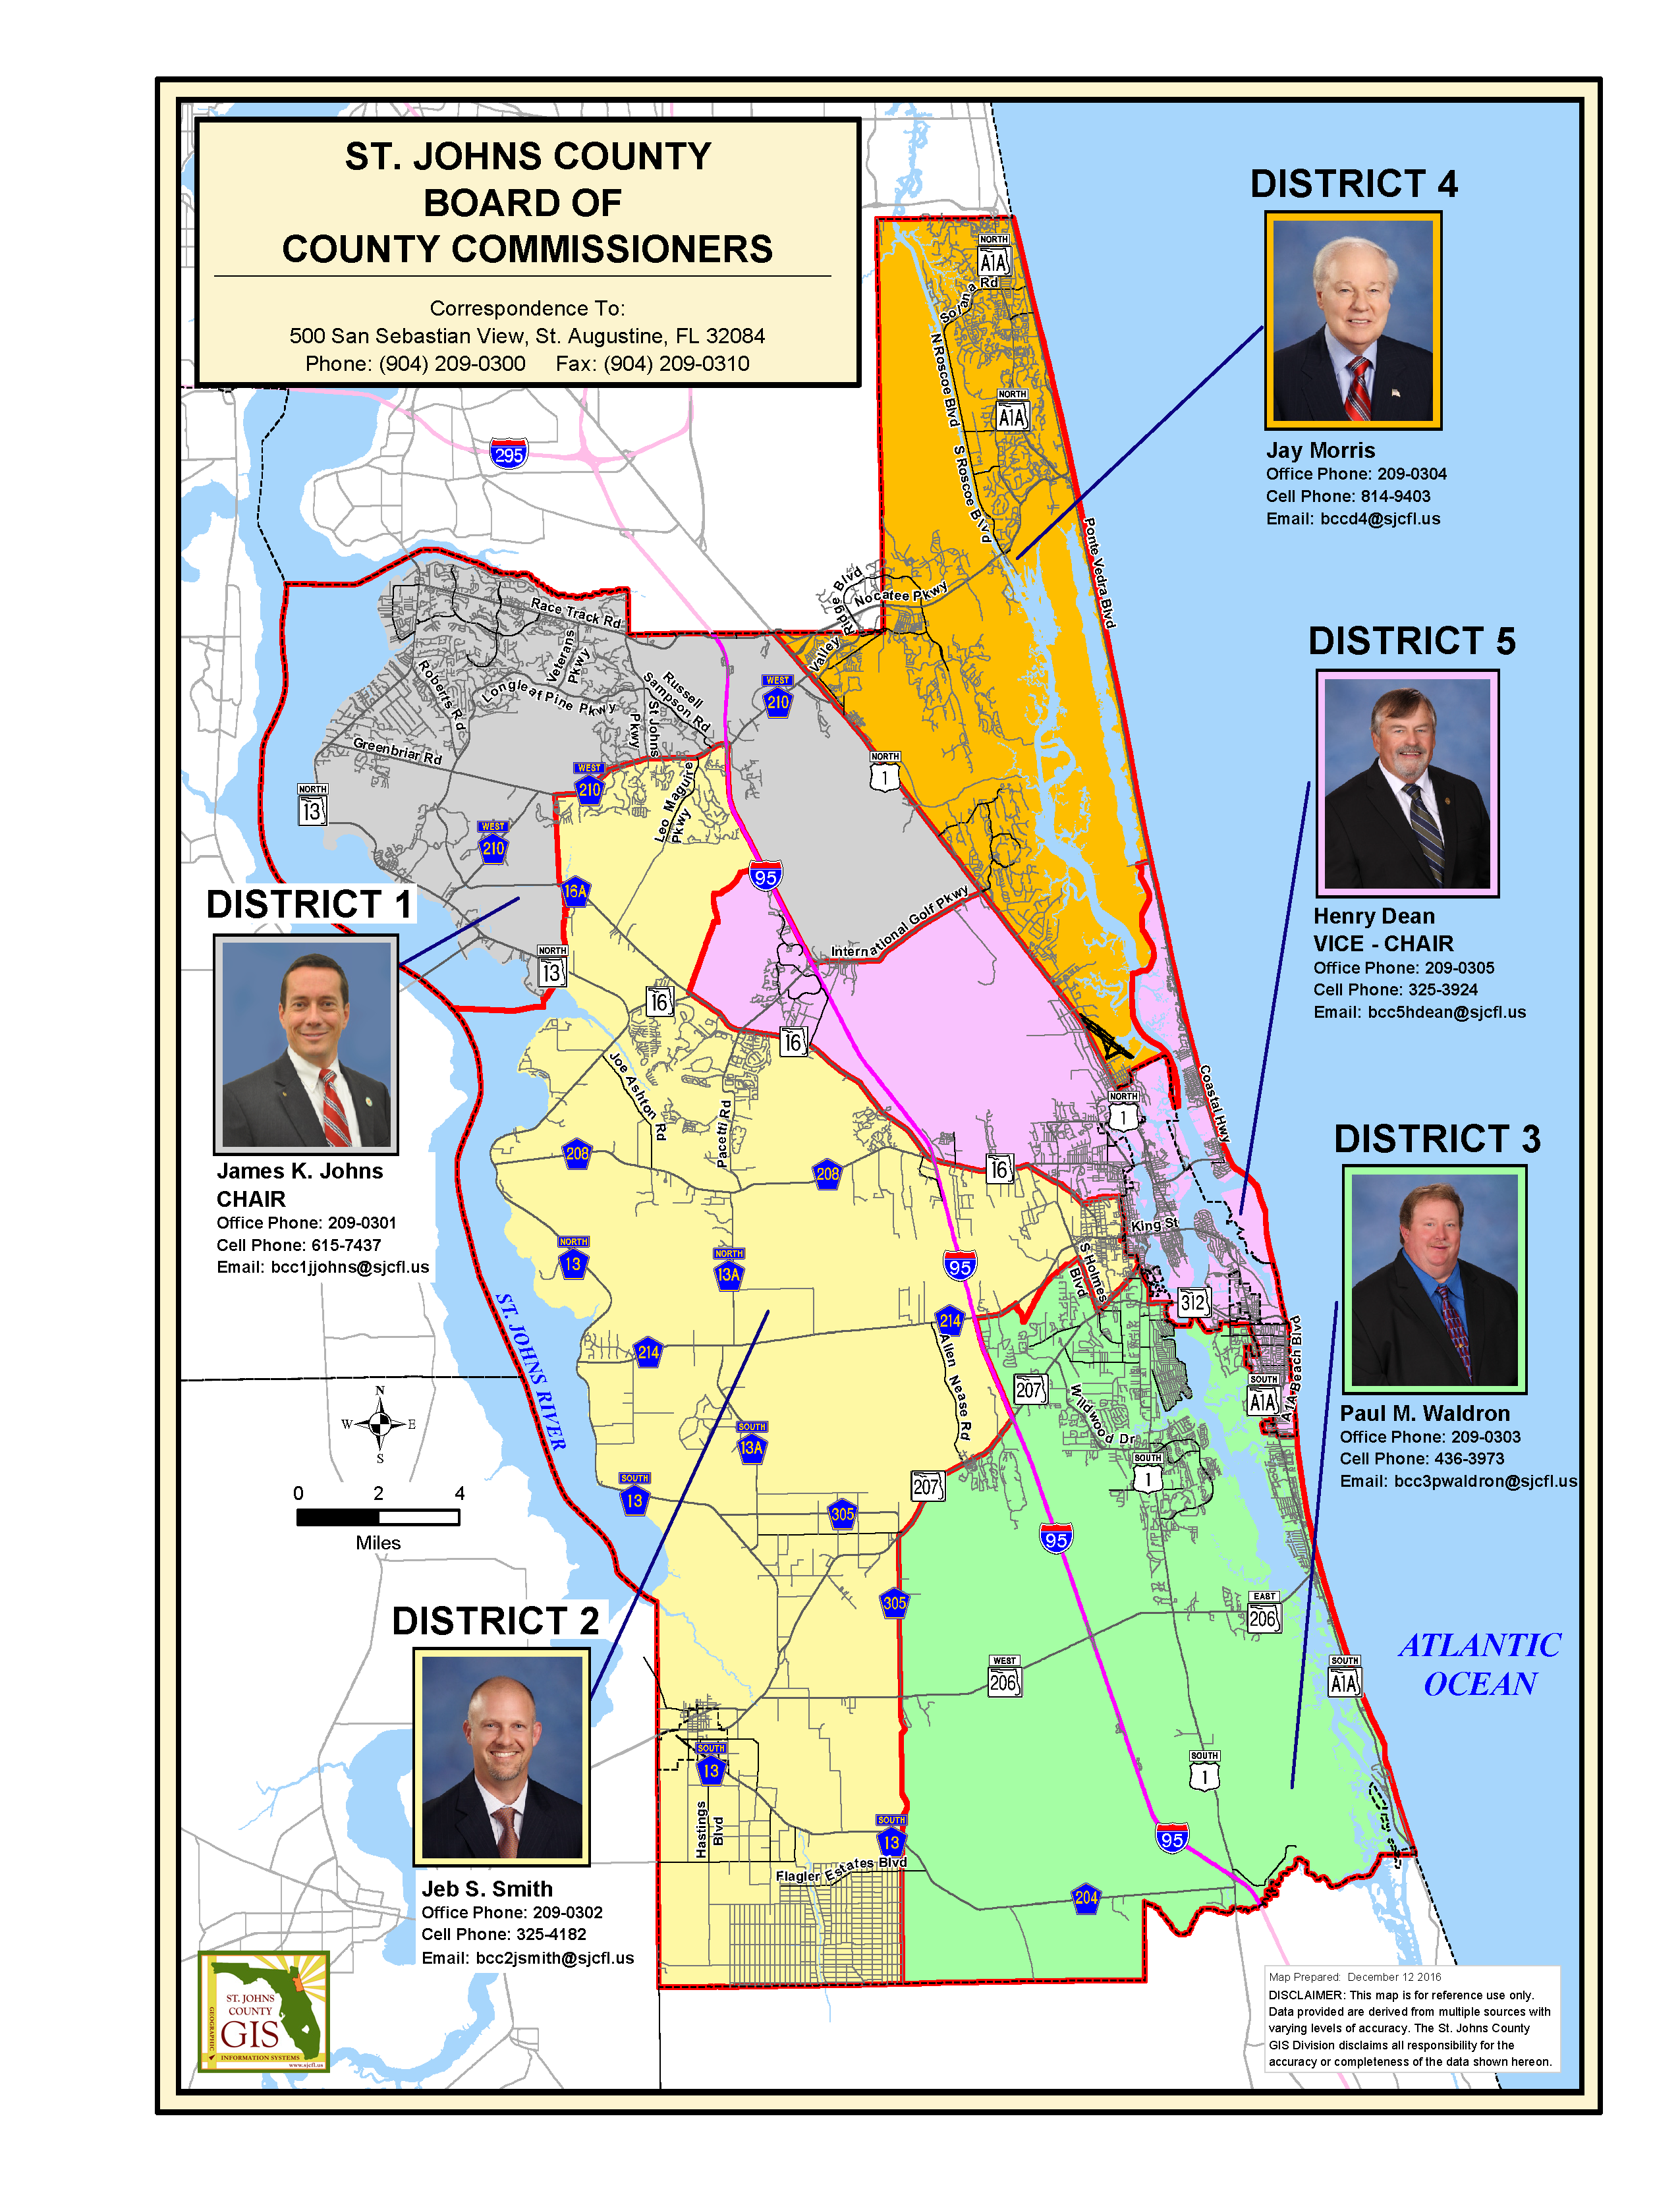 SJC MAP WITH BOCC DISTRICTS